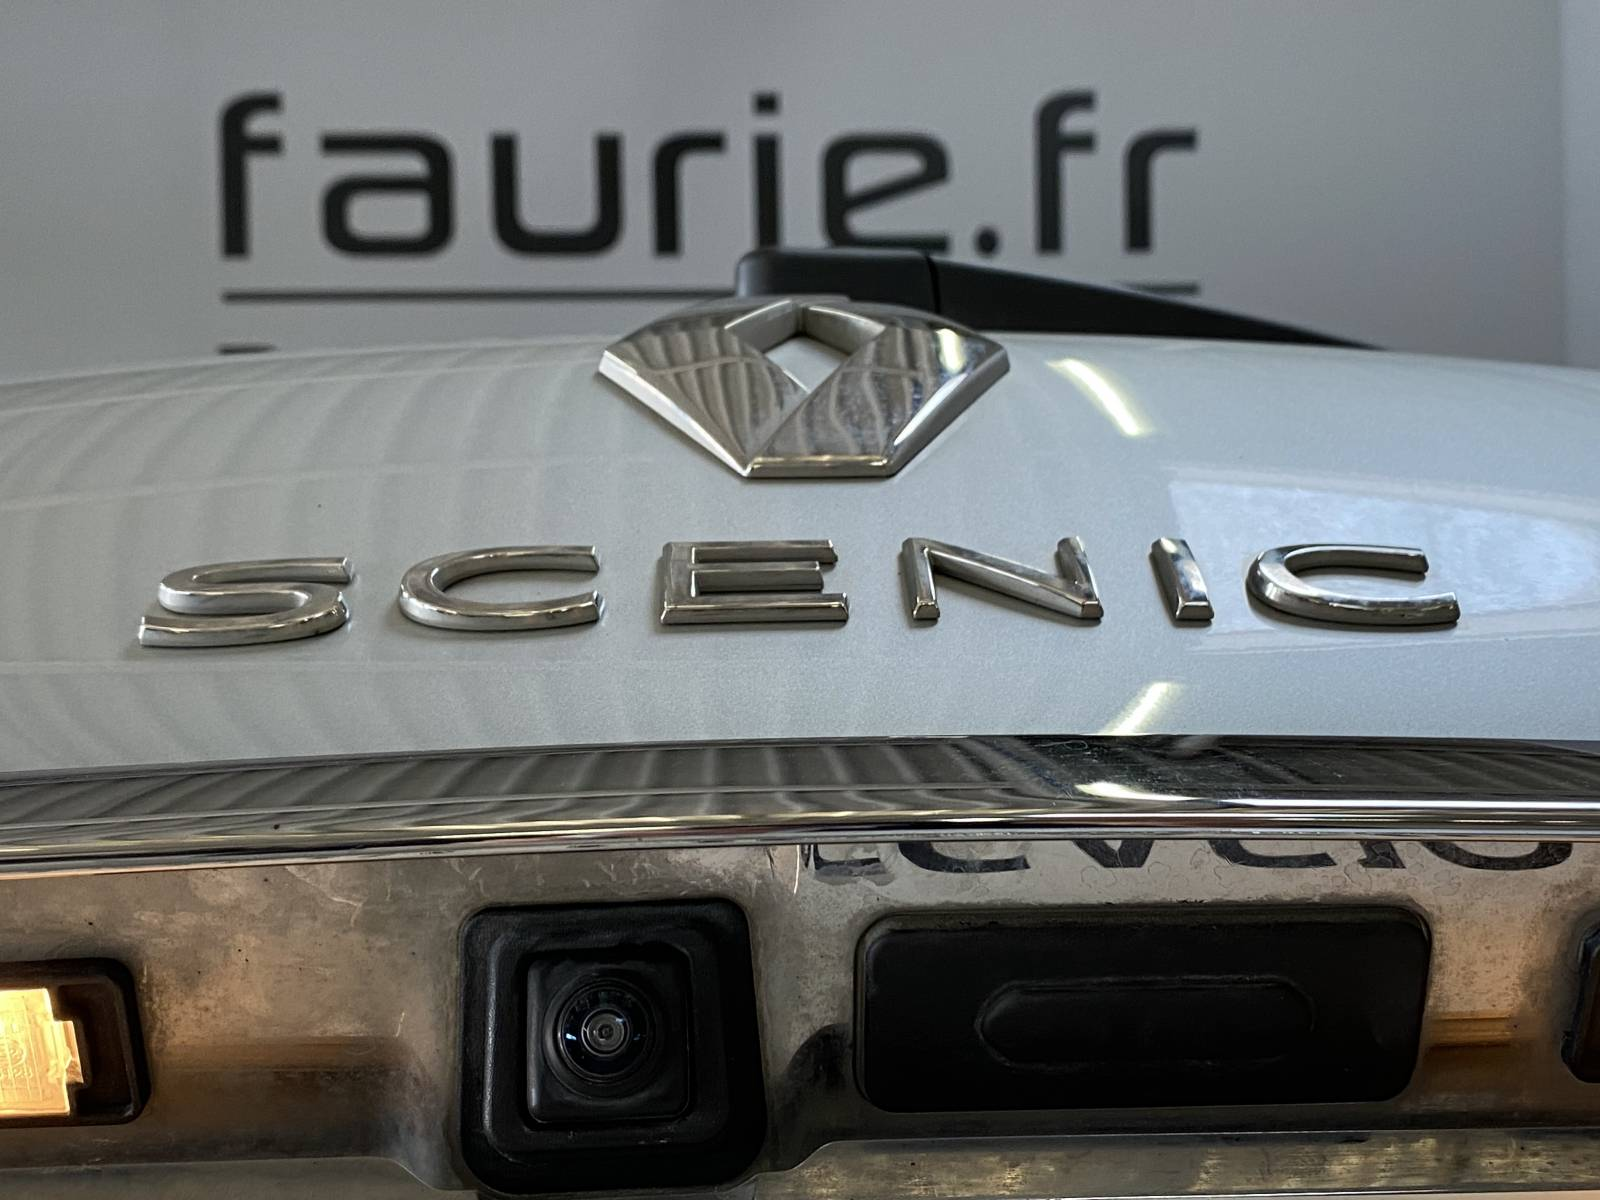 RENAULT Scenic dCi 130 Energy - véhicule d'occasion - Site Internet Faurie - Renault - Faurie Auto Bergerac - 24100 - Bergerac - 61